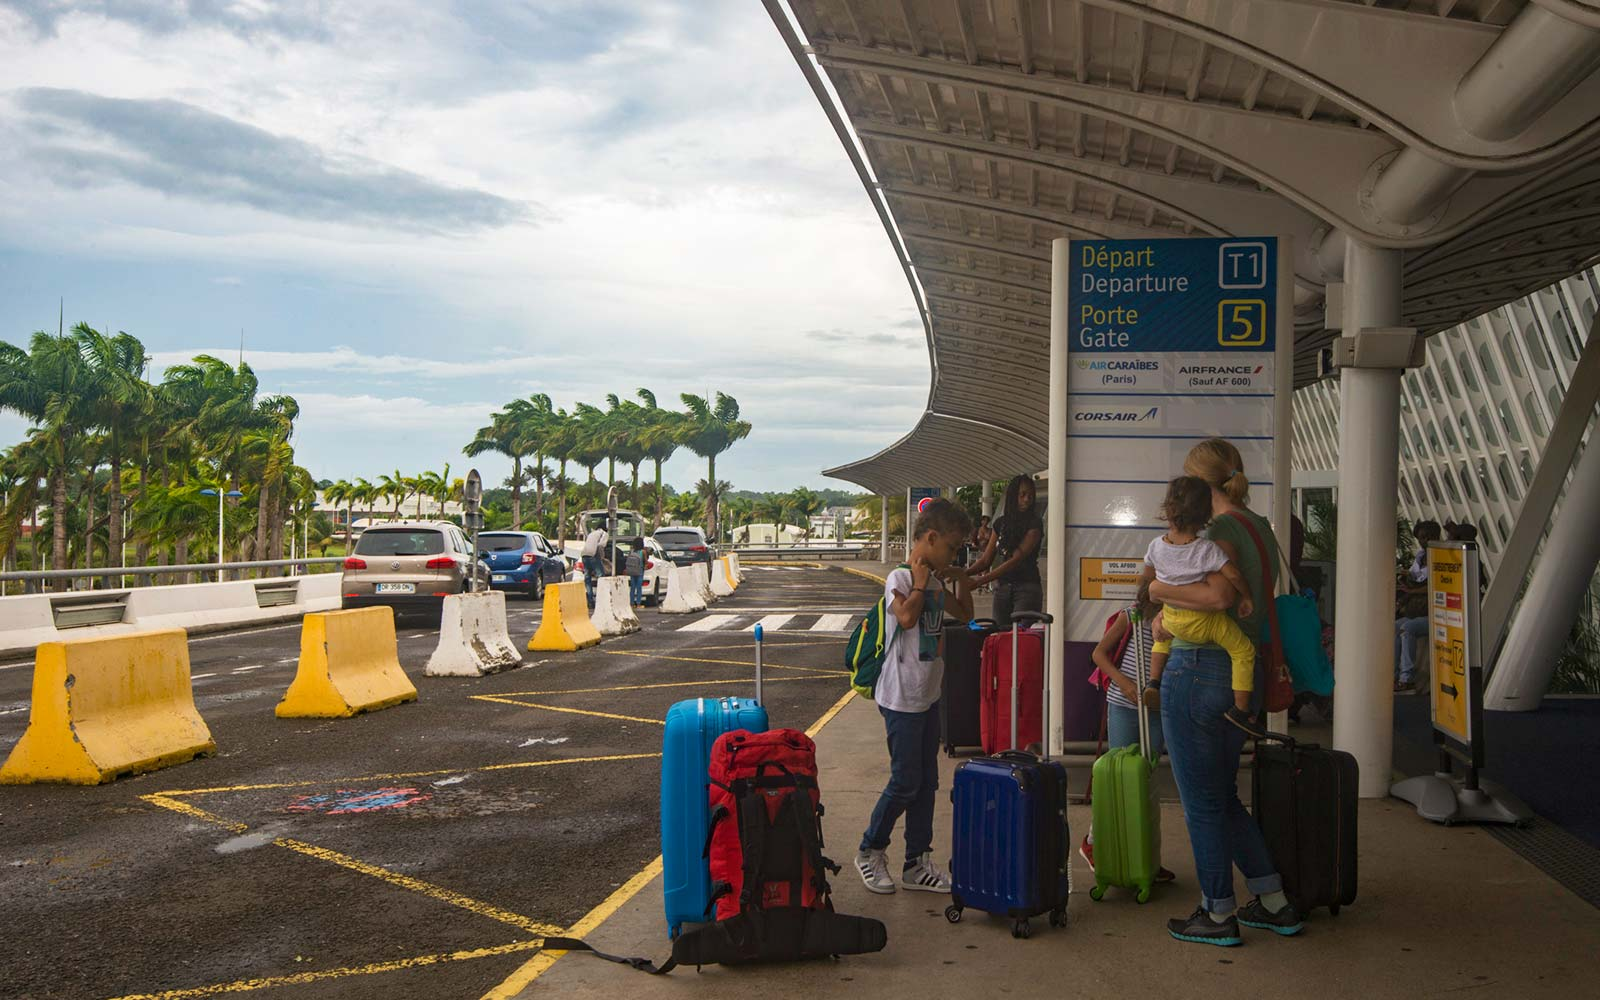 Passengers arrive to board their plane at the departures terminal at the Pole Caraibes international airport in Pointe-a-Pitre, which re-opened on September 6, 2017, after hurricane Irma hit the island.Hurricane Irma, one of the most powerful Atlantic st